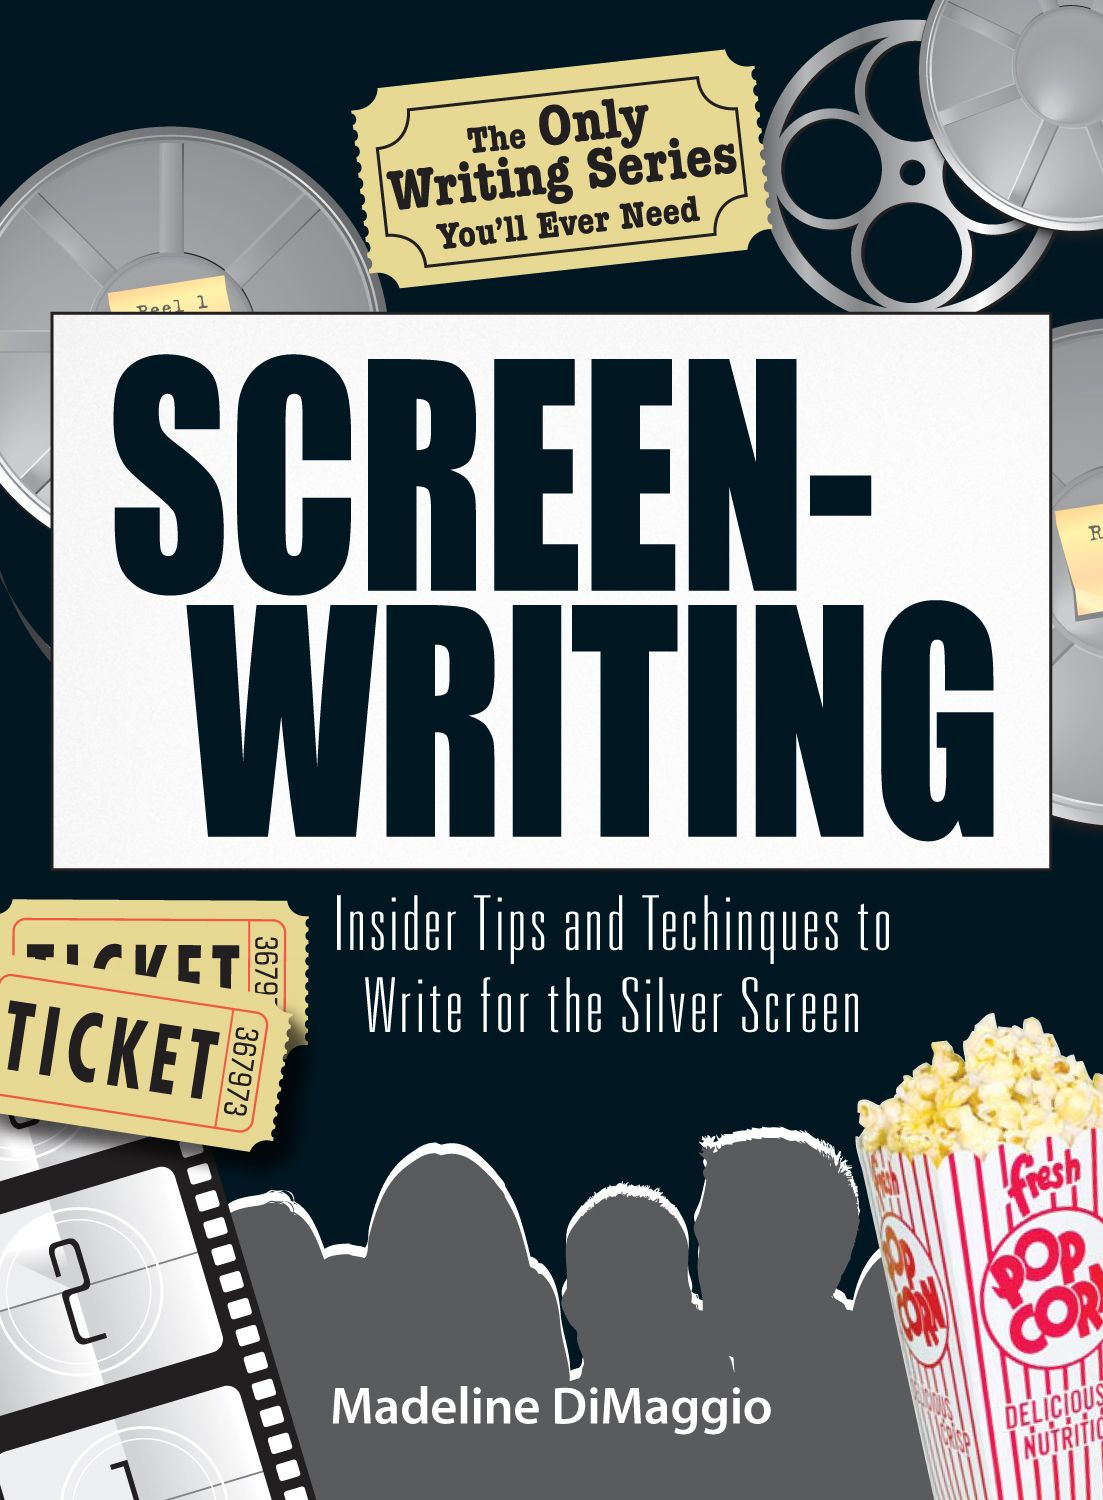 The Only Writing Series You'll Ever Need   Screenwriting: Insider Tips and Techniques to Write for the Silver Screen! By: Madeline Dimaggio